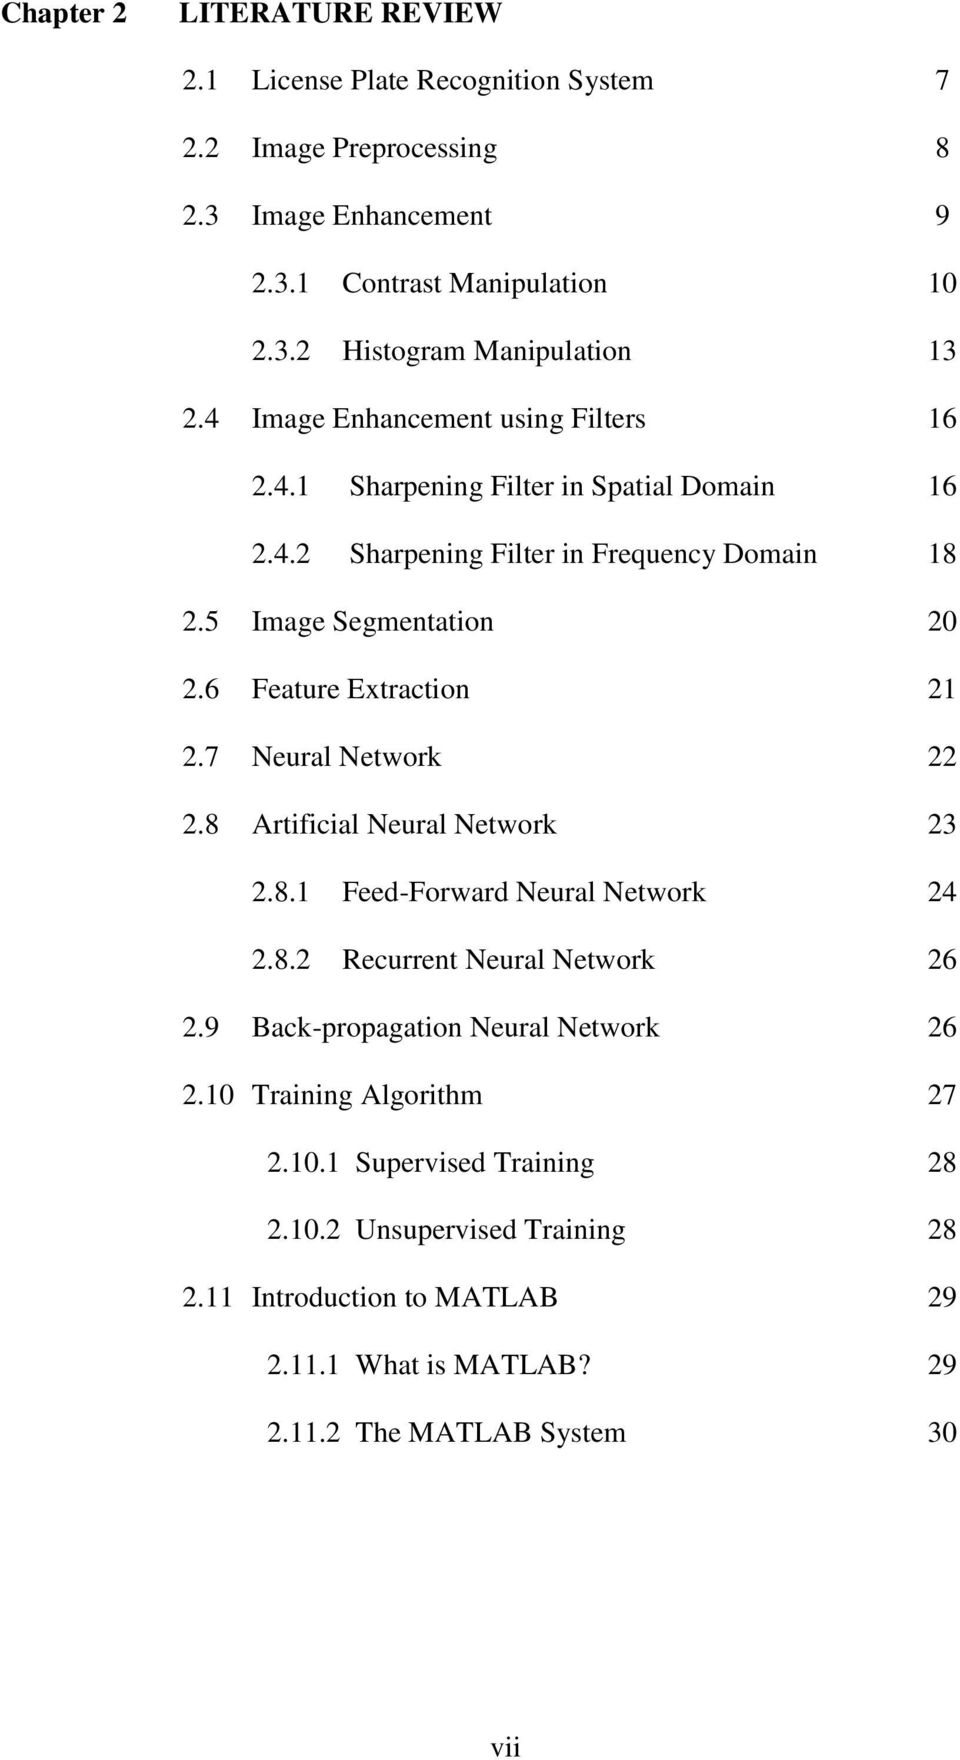 7 Neural Network 2.8 Artificial Neural Network 2.8.1 Feed-Forward Neural Network 2.8.2 Recurrent Neural Network 2.9 Back-propagation Neural Network 2.10 Training Algorithm 2.10.1 Supervised Training 2.